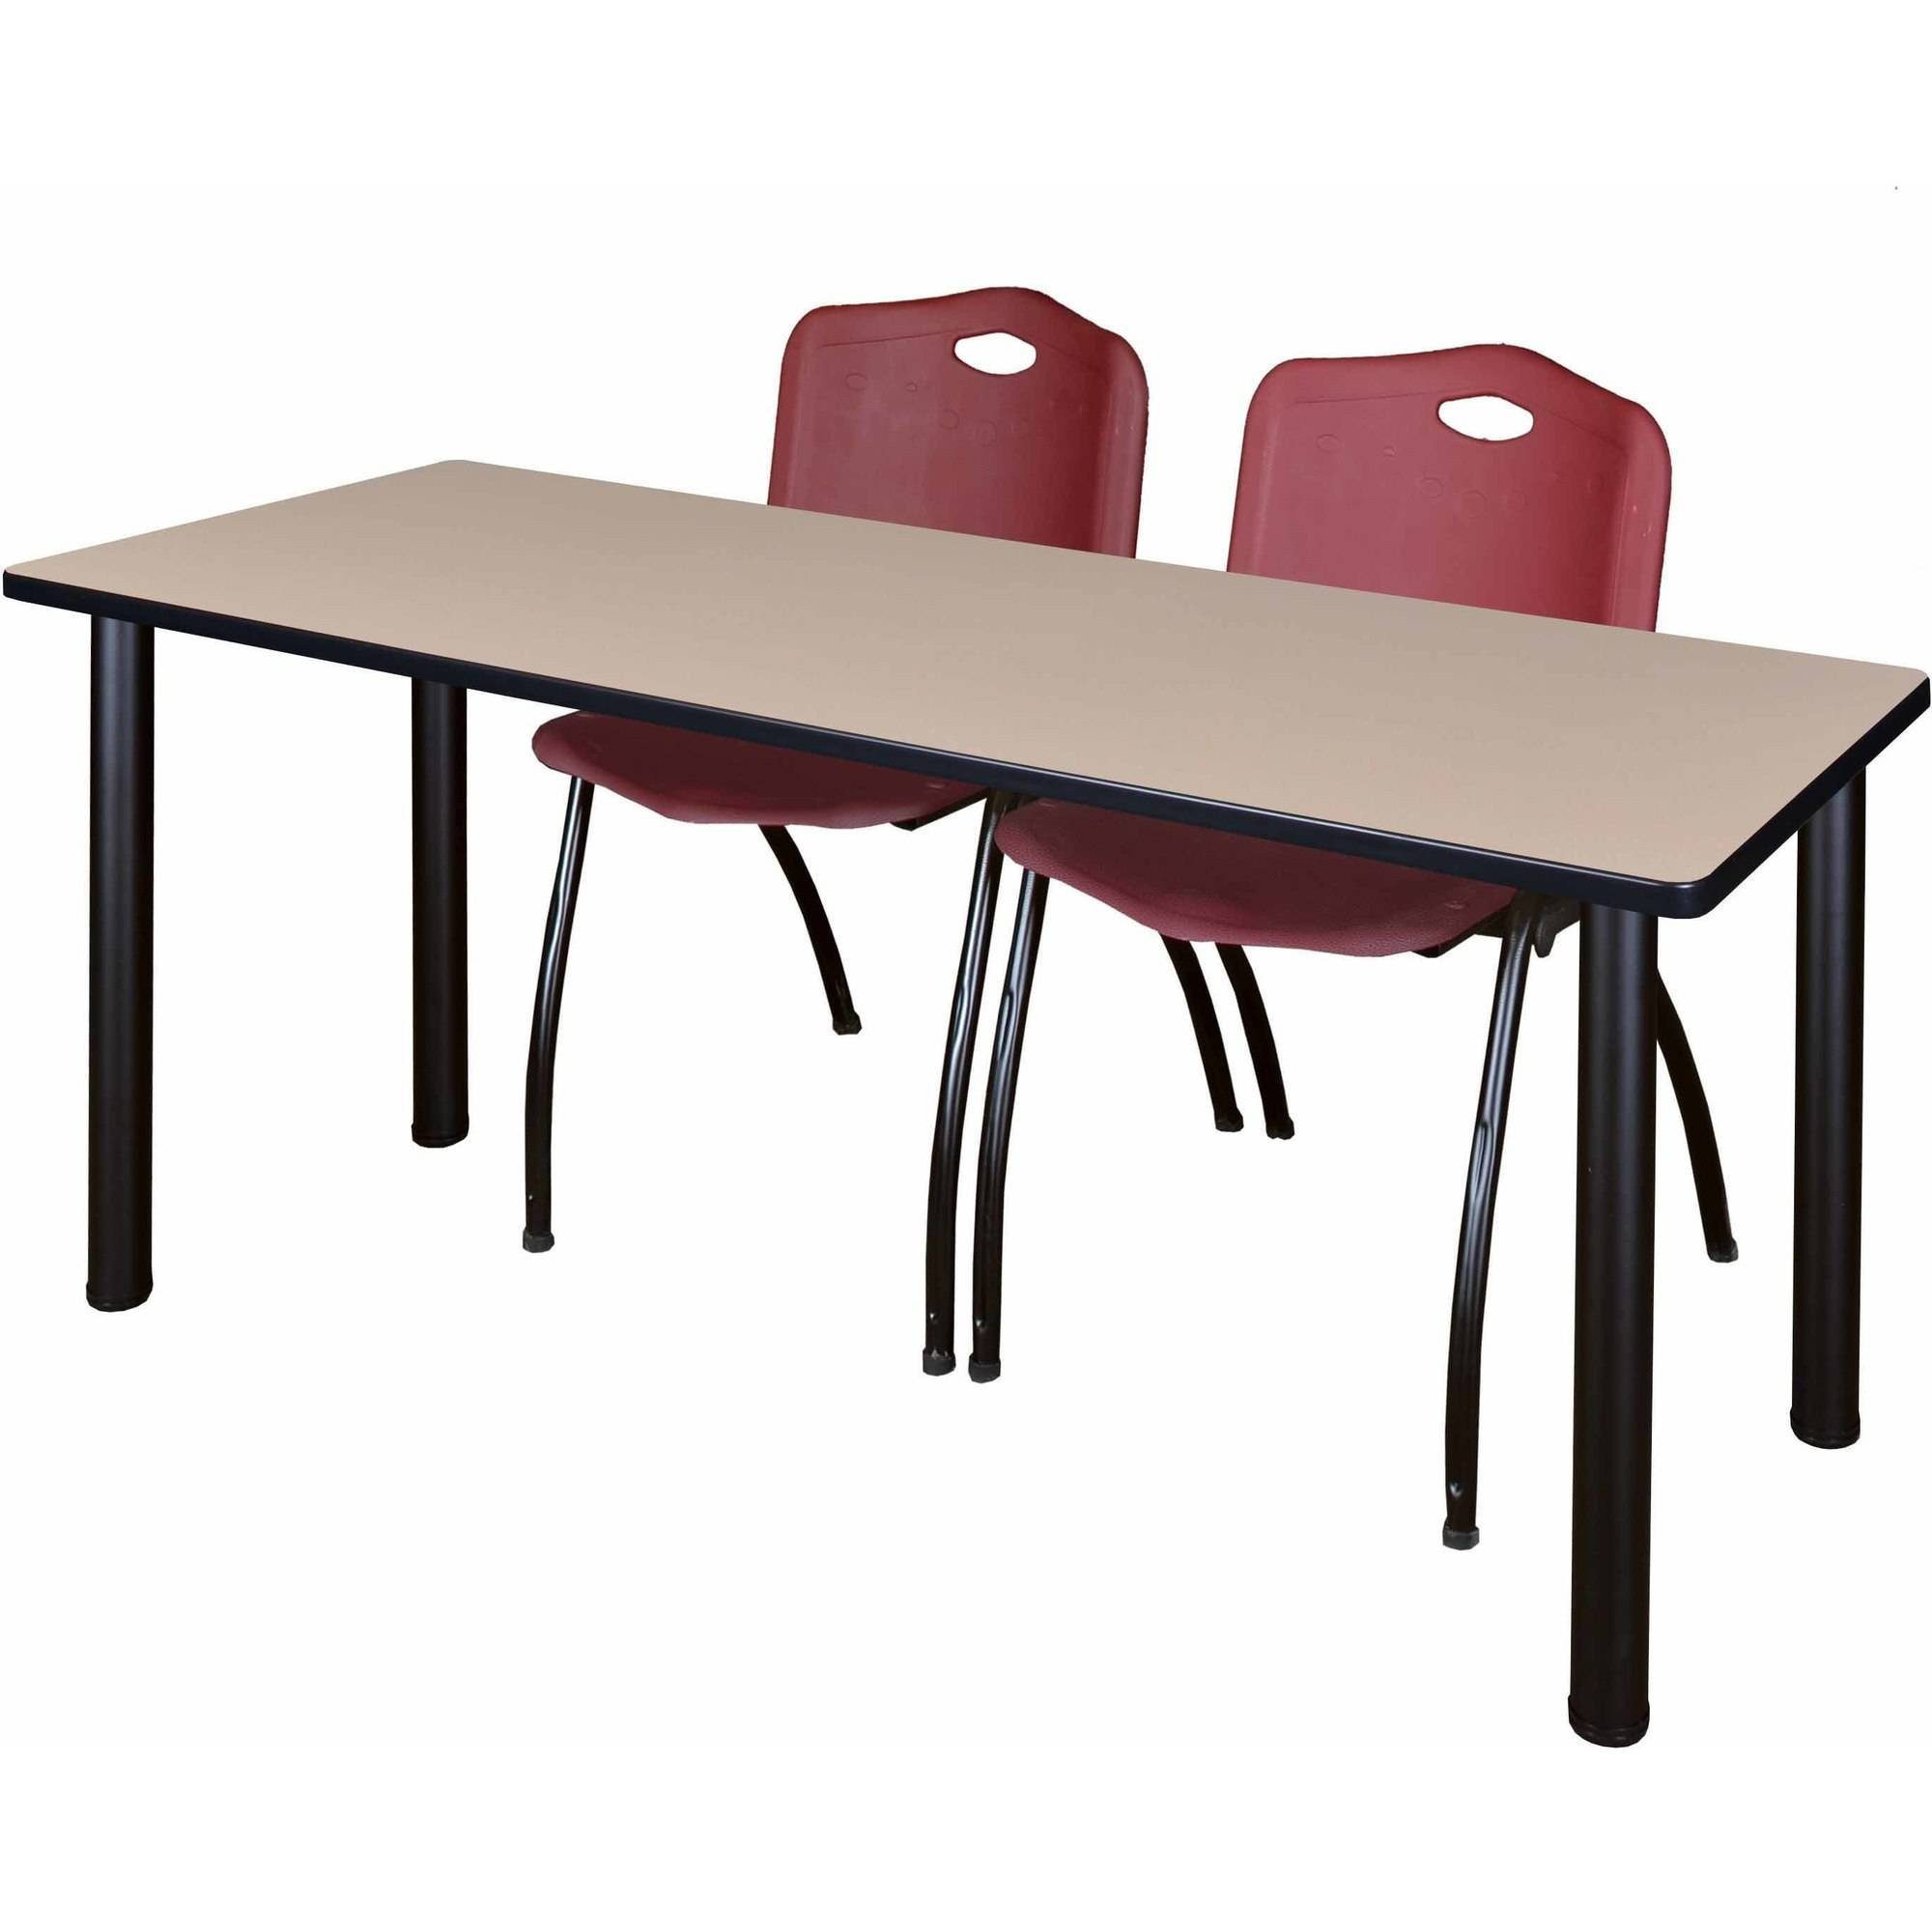 """Regency Kee 66"""" x 24"""" Training Table, Beige/Black and 2 'M' Stack Chairs, Multiple Colors"""